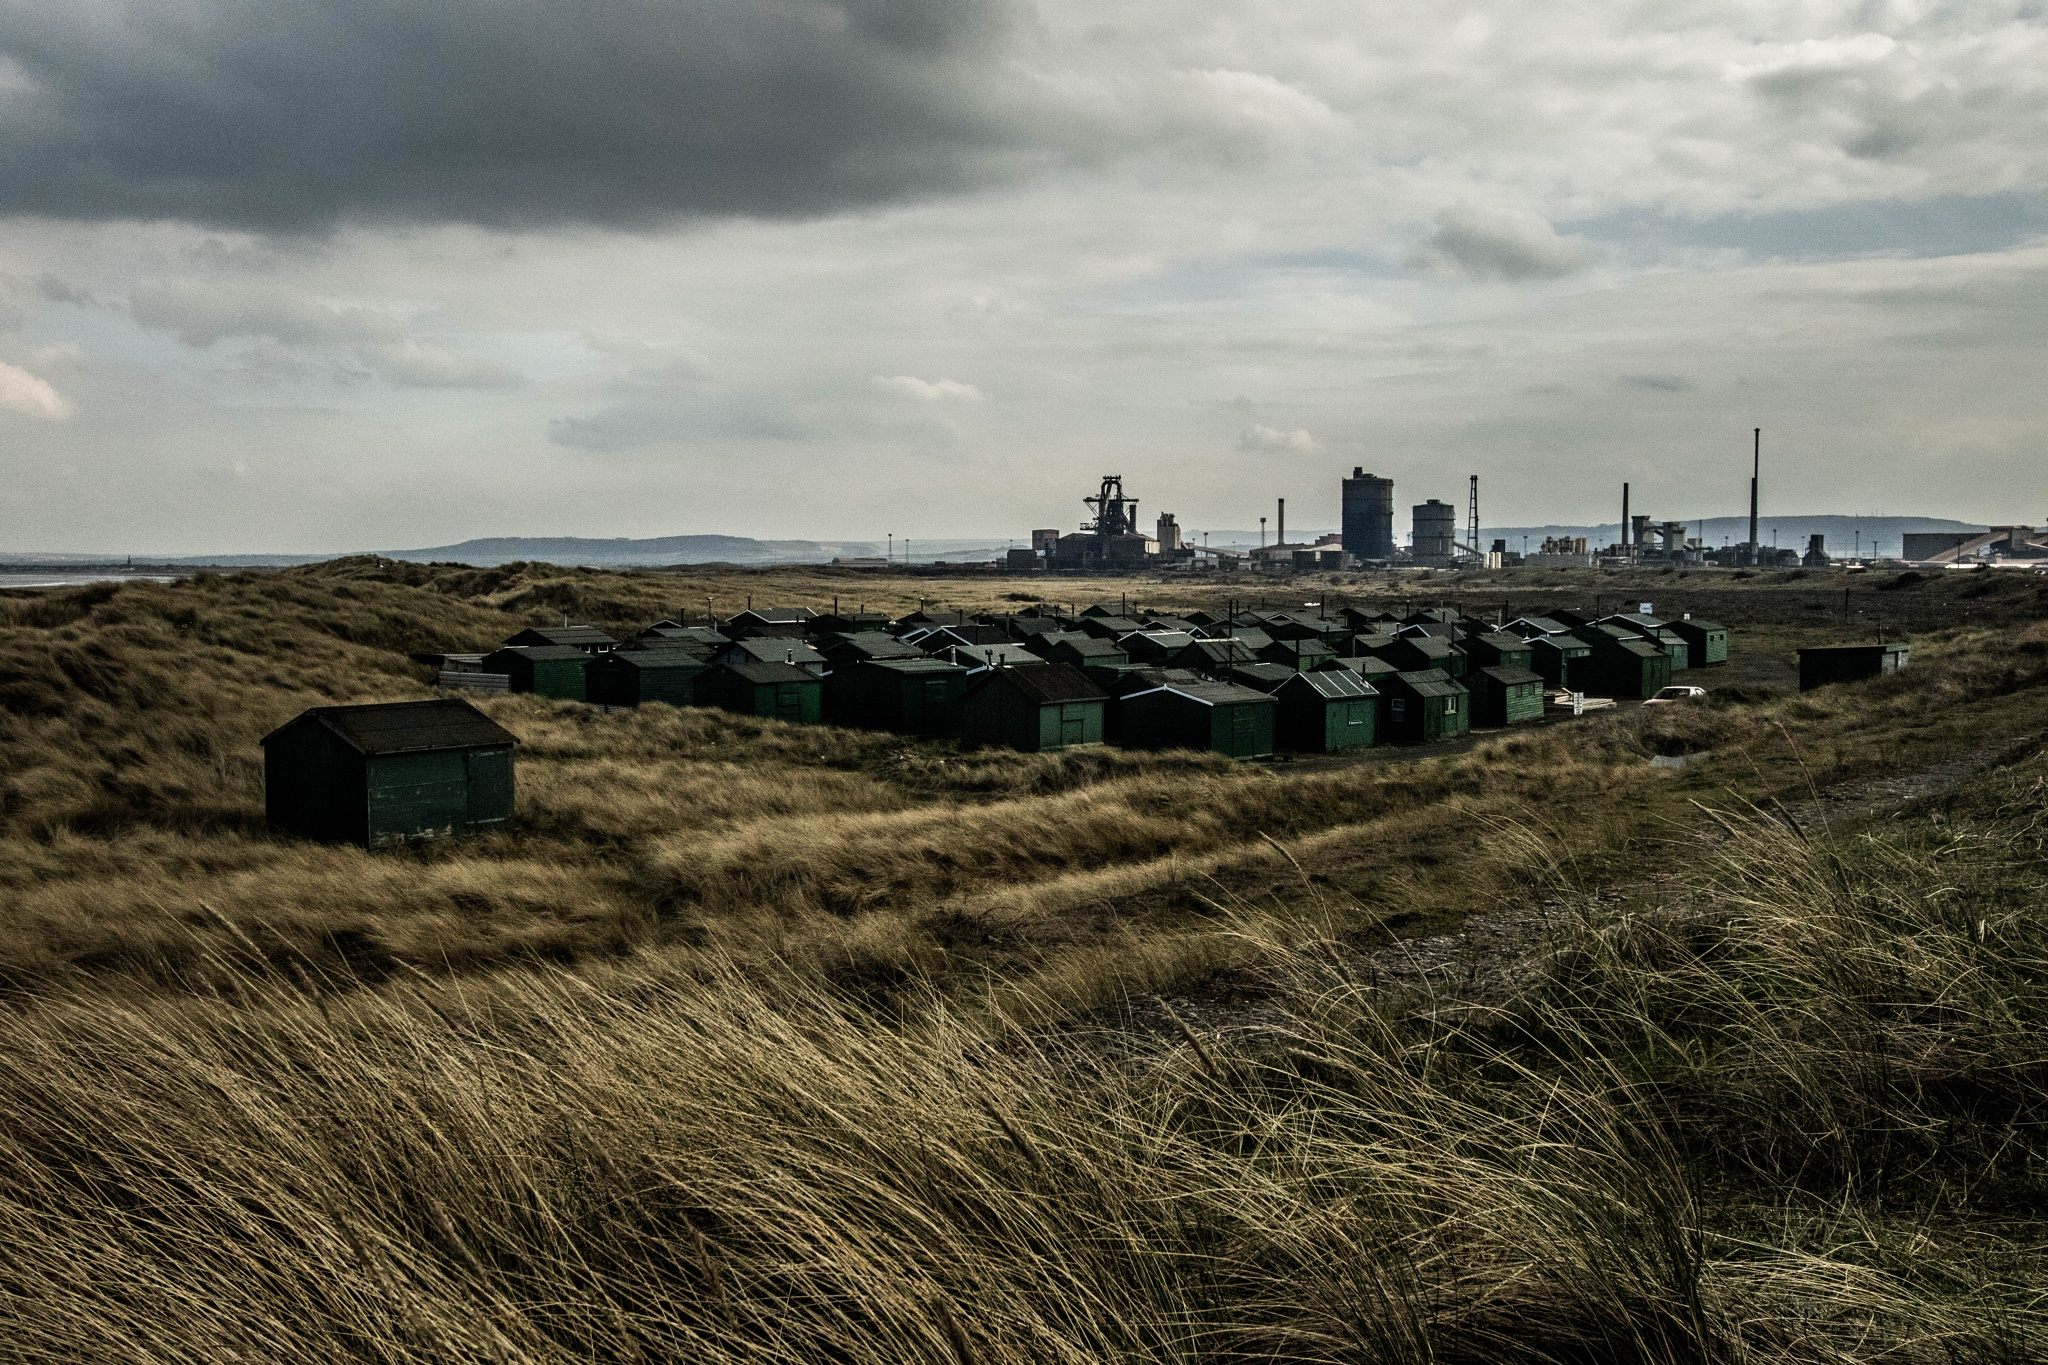 South Gare, Middlesbrough by Xanthe Towler